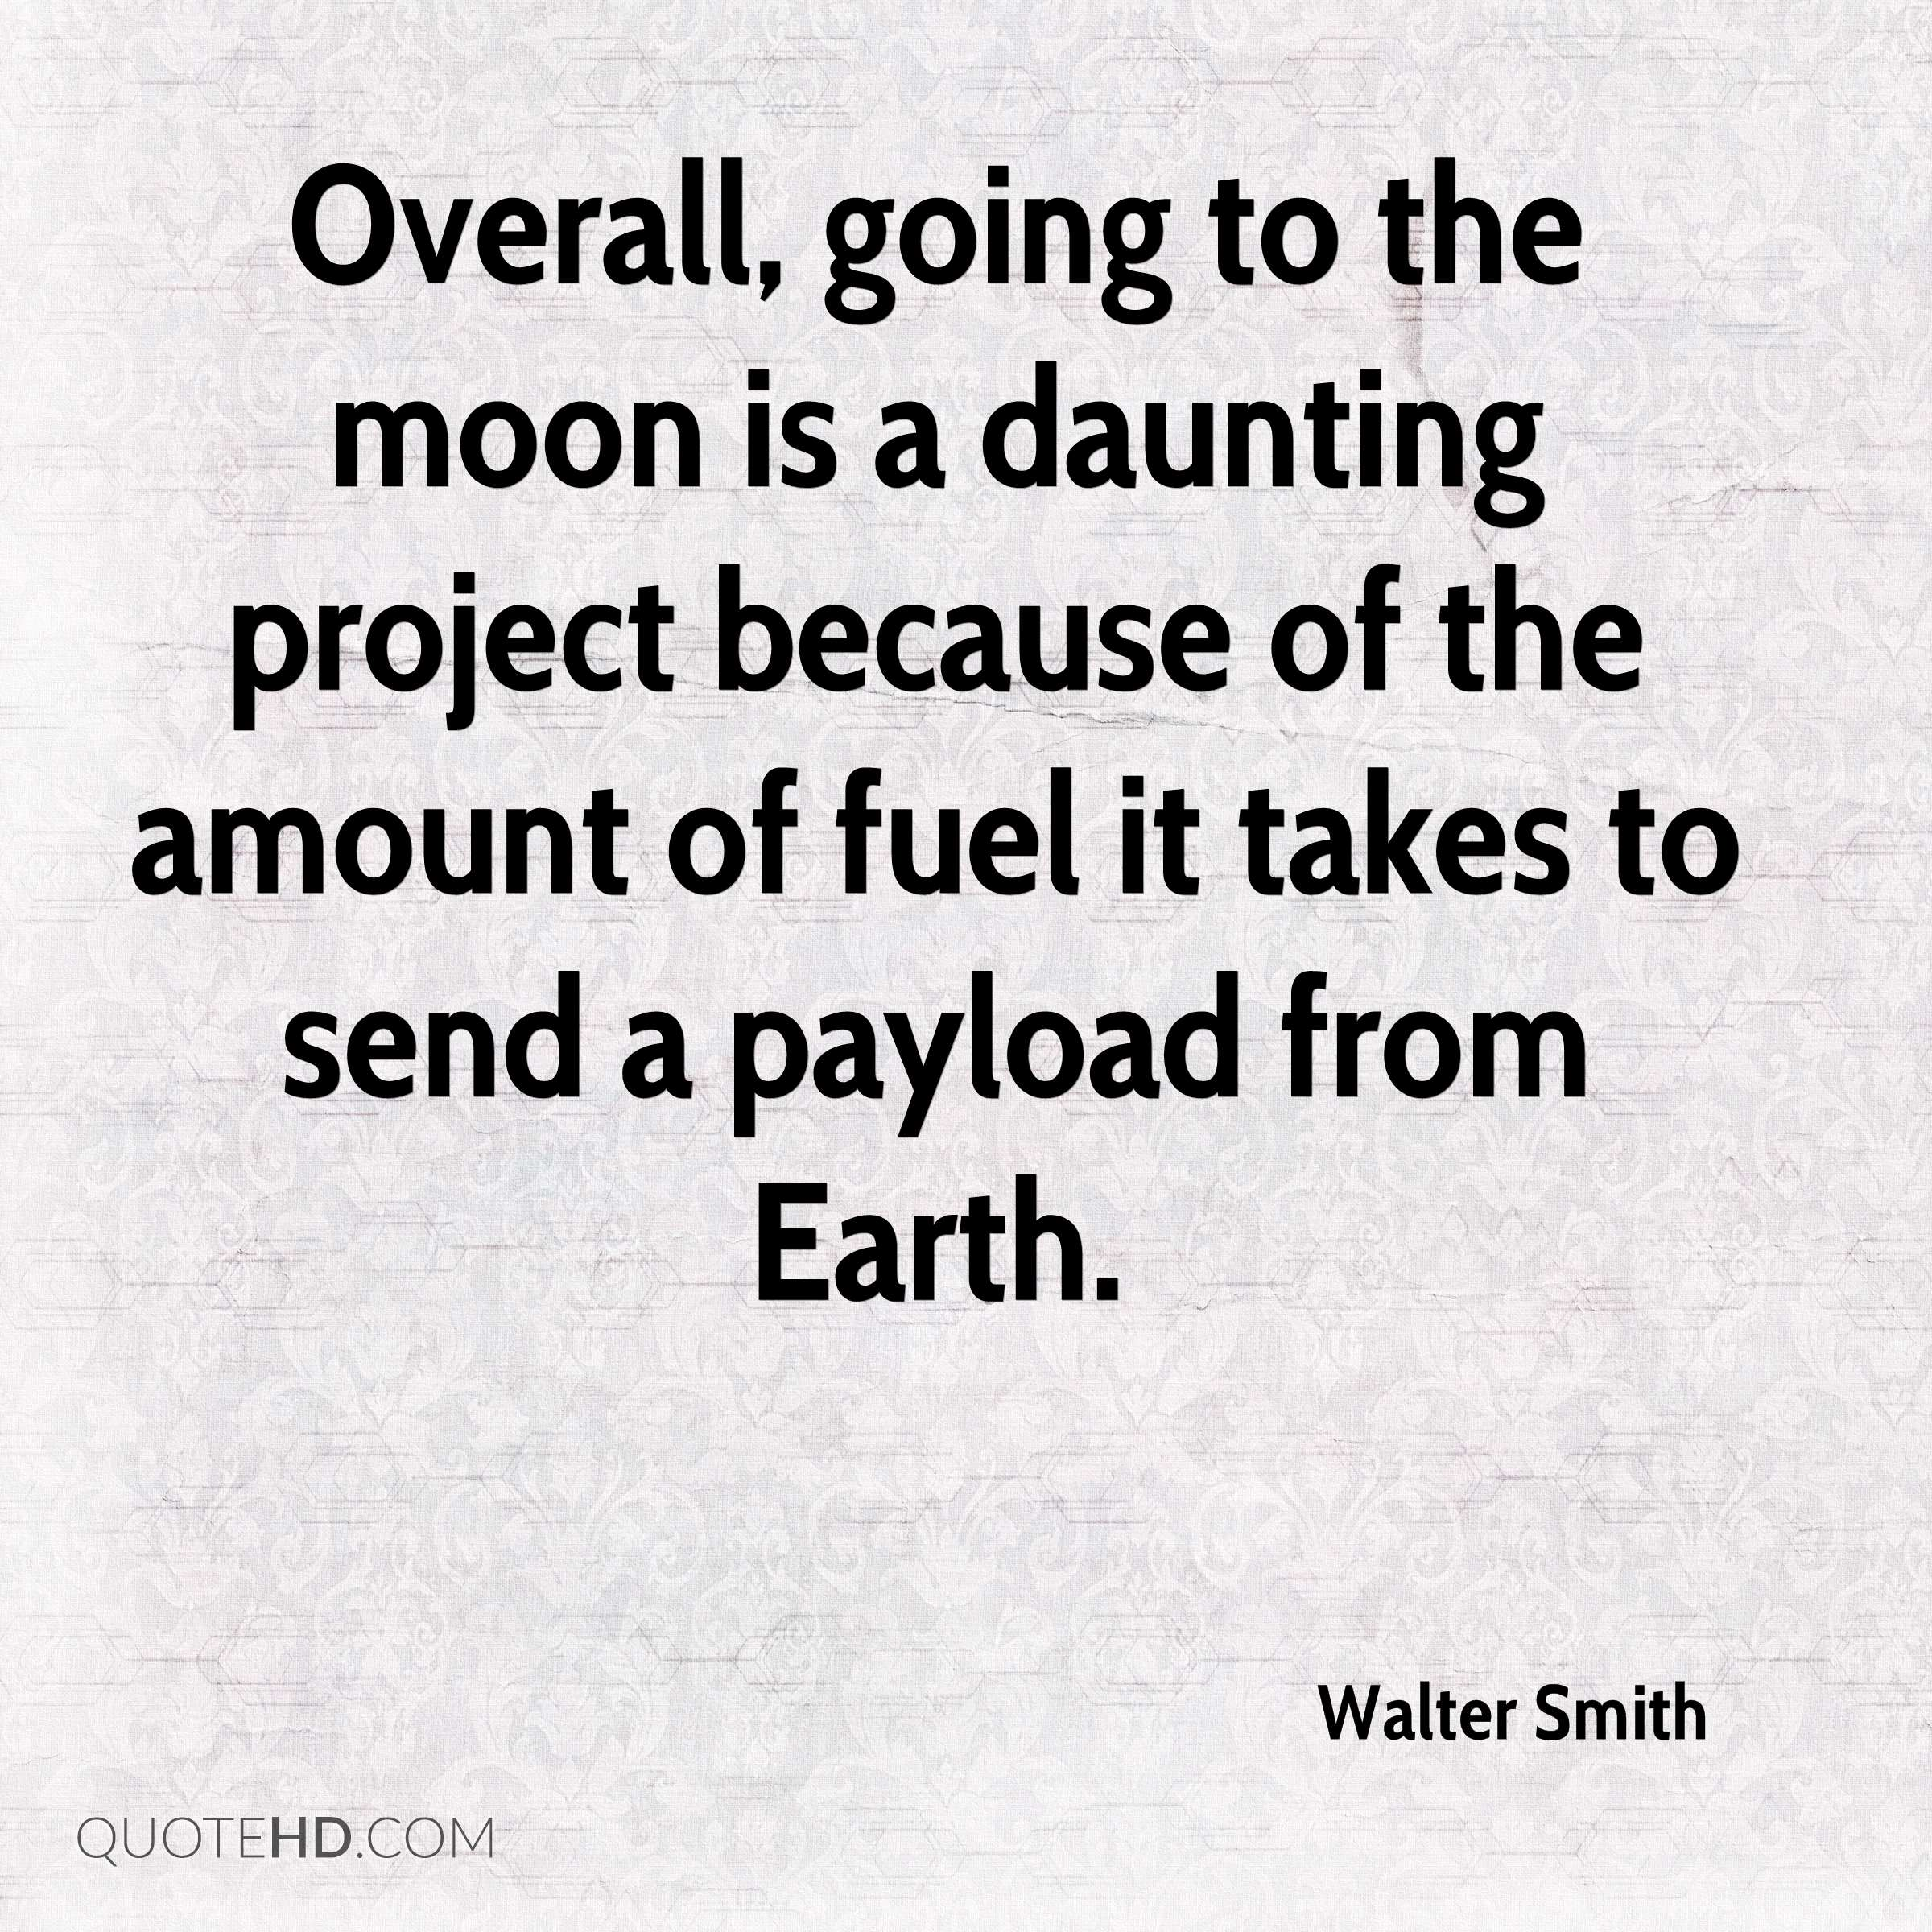 Overall, going to the moon is a daunting project because of the amount of fuel it takes to send a payload from Earth.